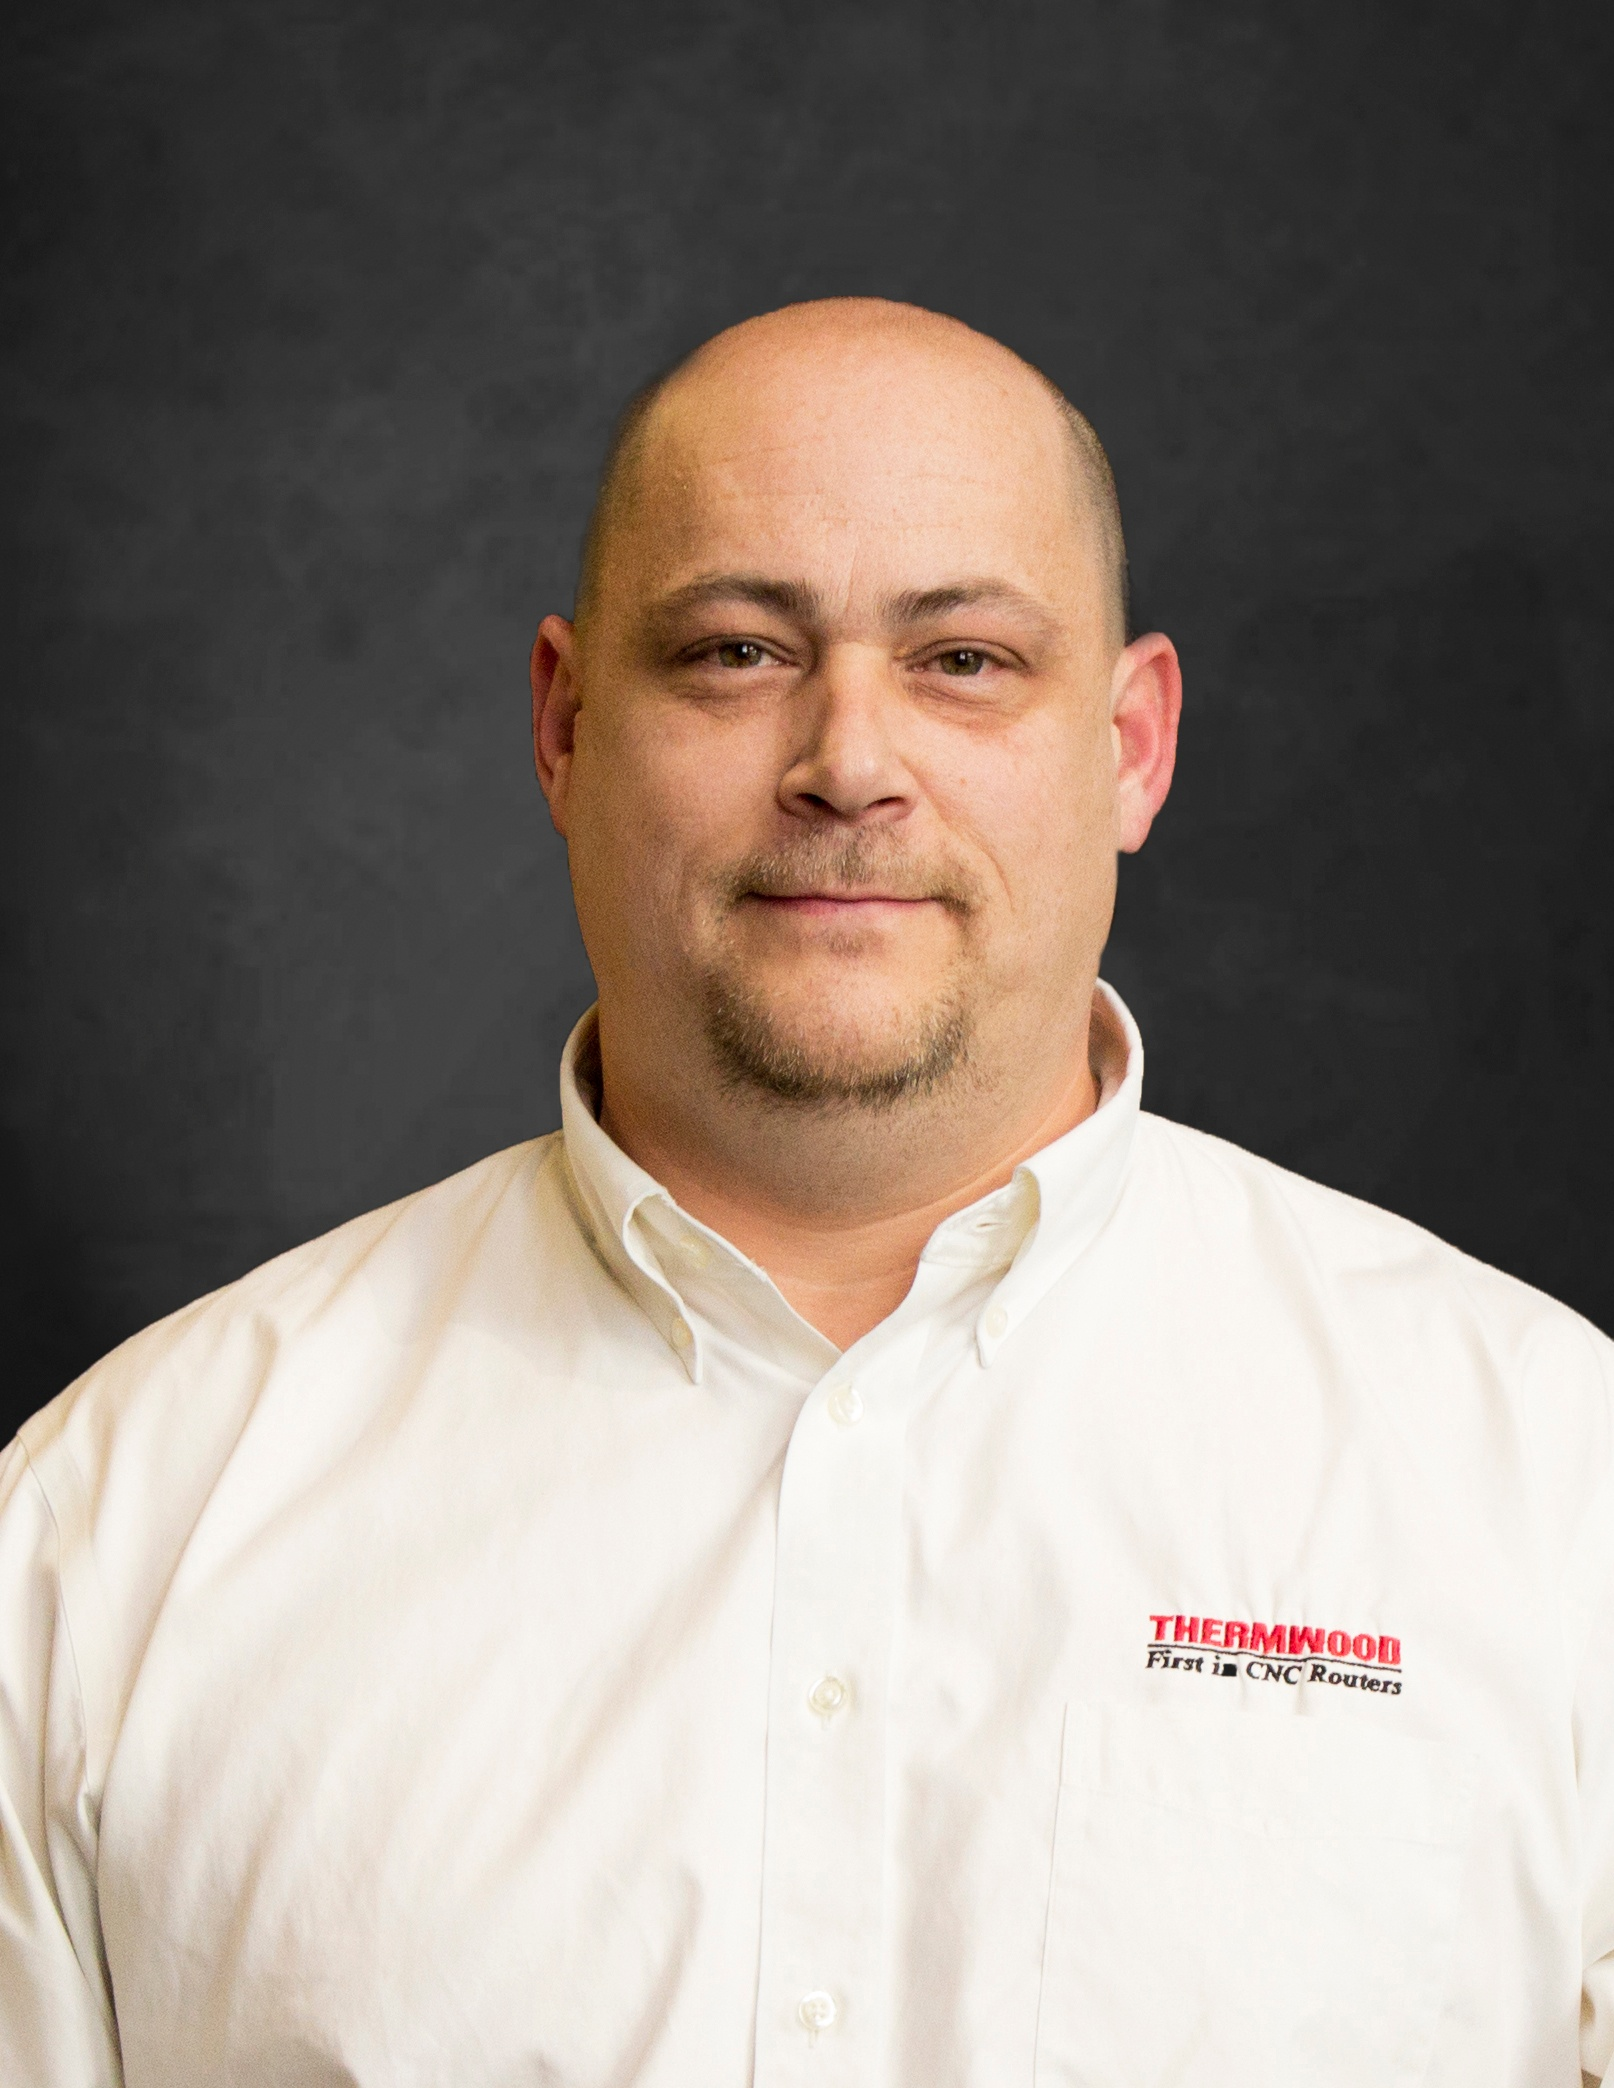 Thermwood Appoints Joe Harger as LSAM Applications Manager